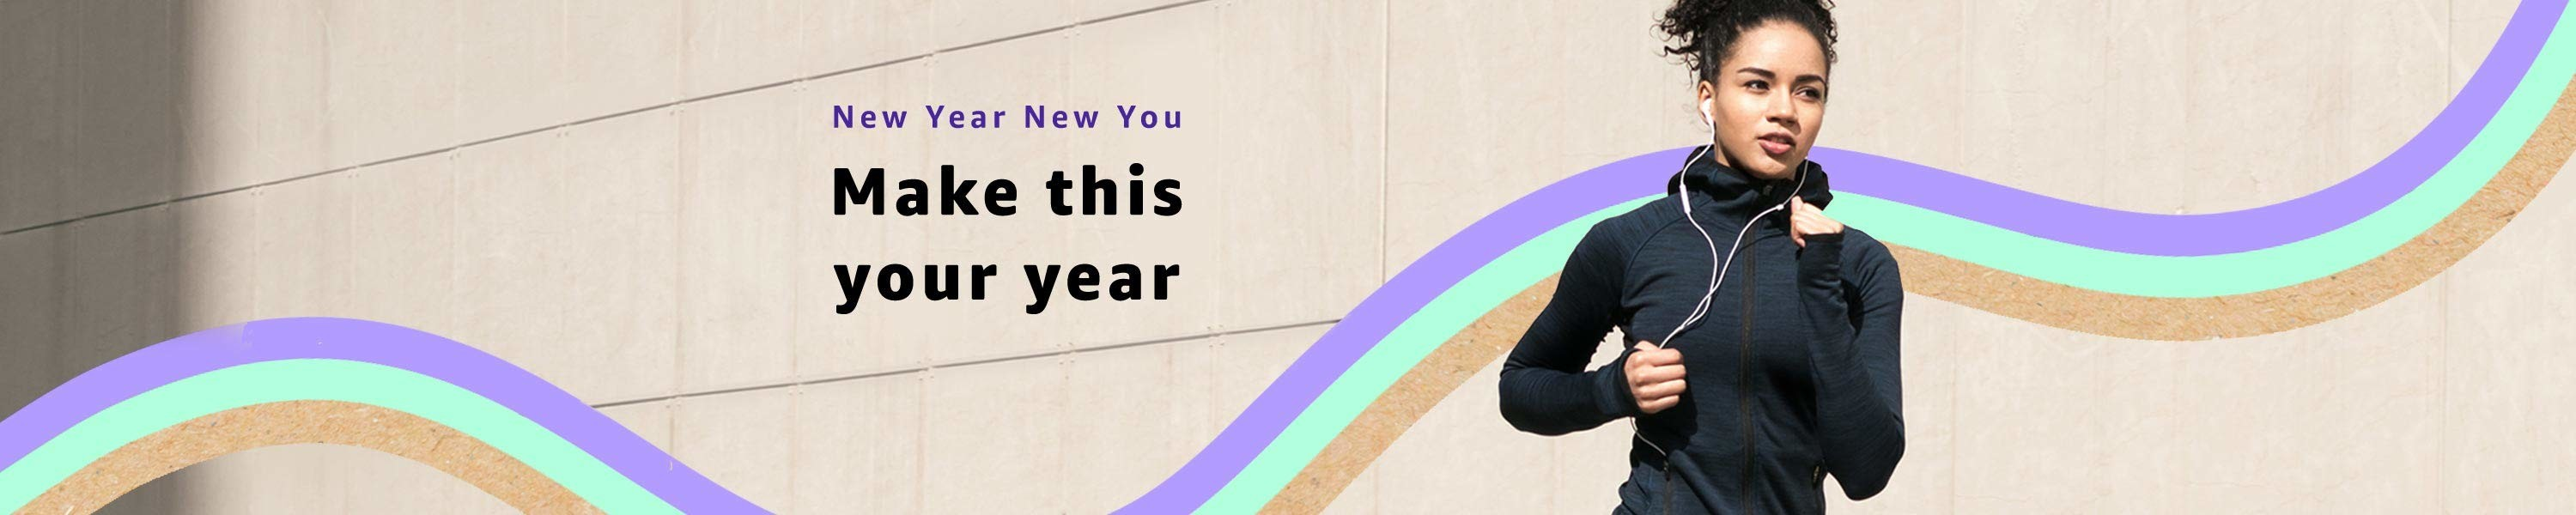 New Year, New You | New Year's Resolutions Deals